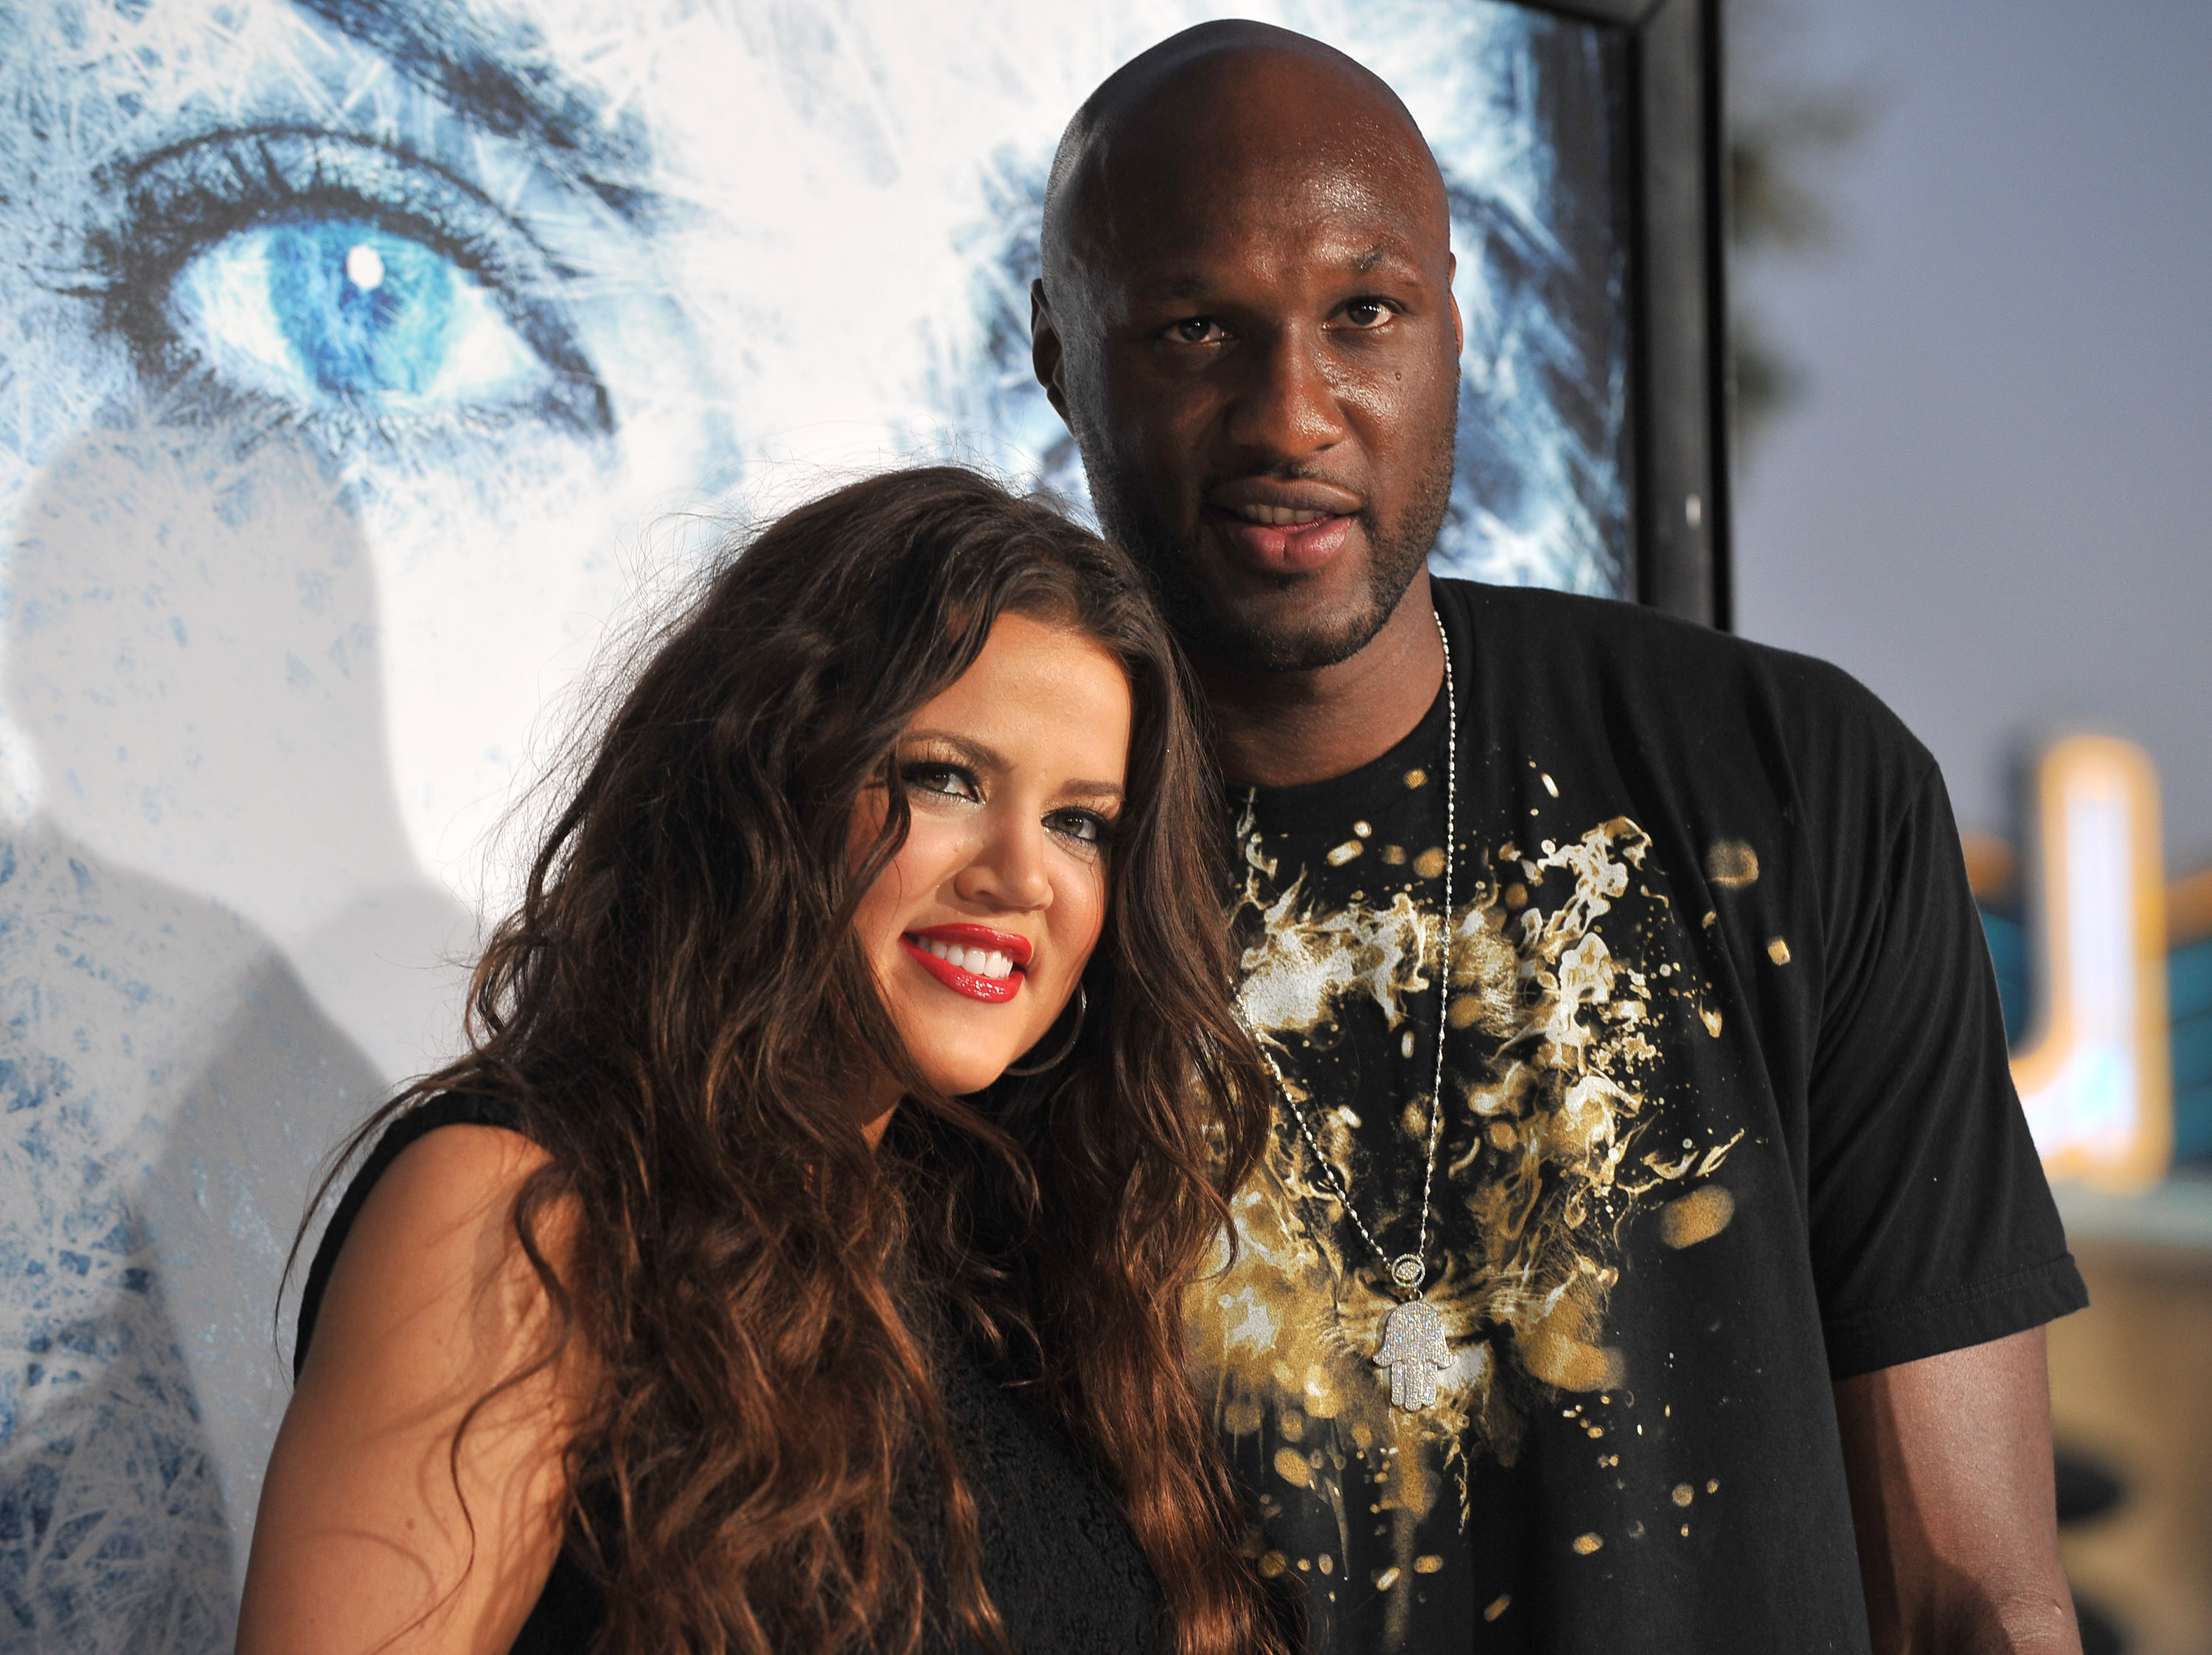 Lamar Odom penning book about marriage to Khloe Kardashian and what 'went on behind hospital doors'